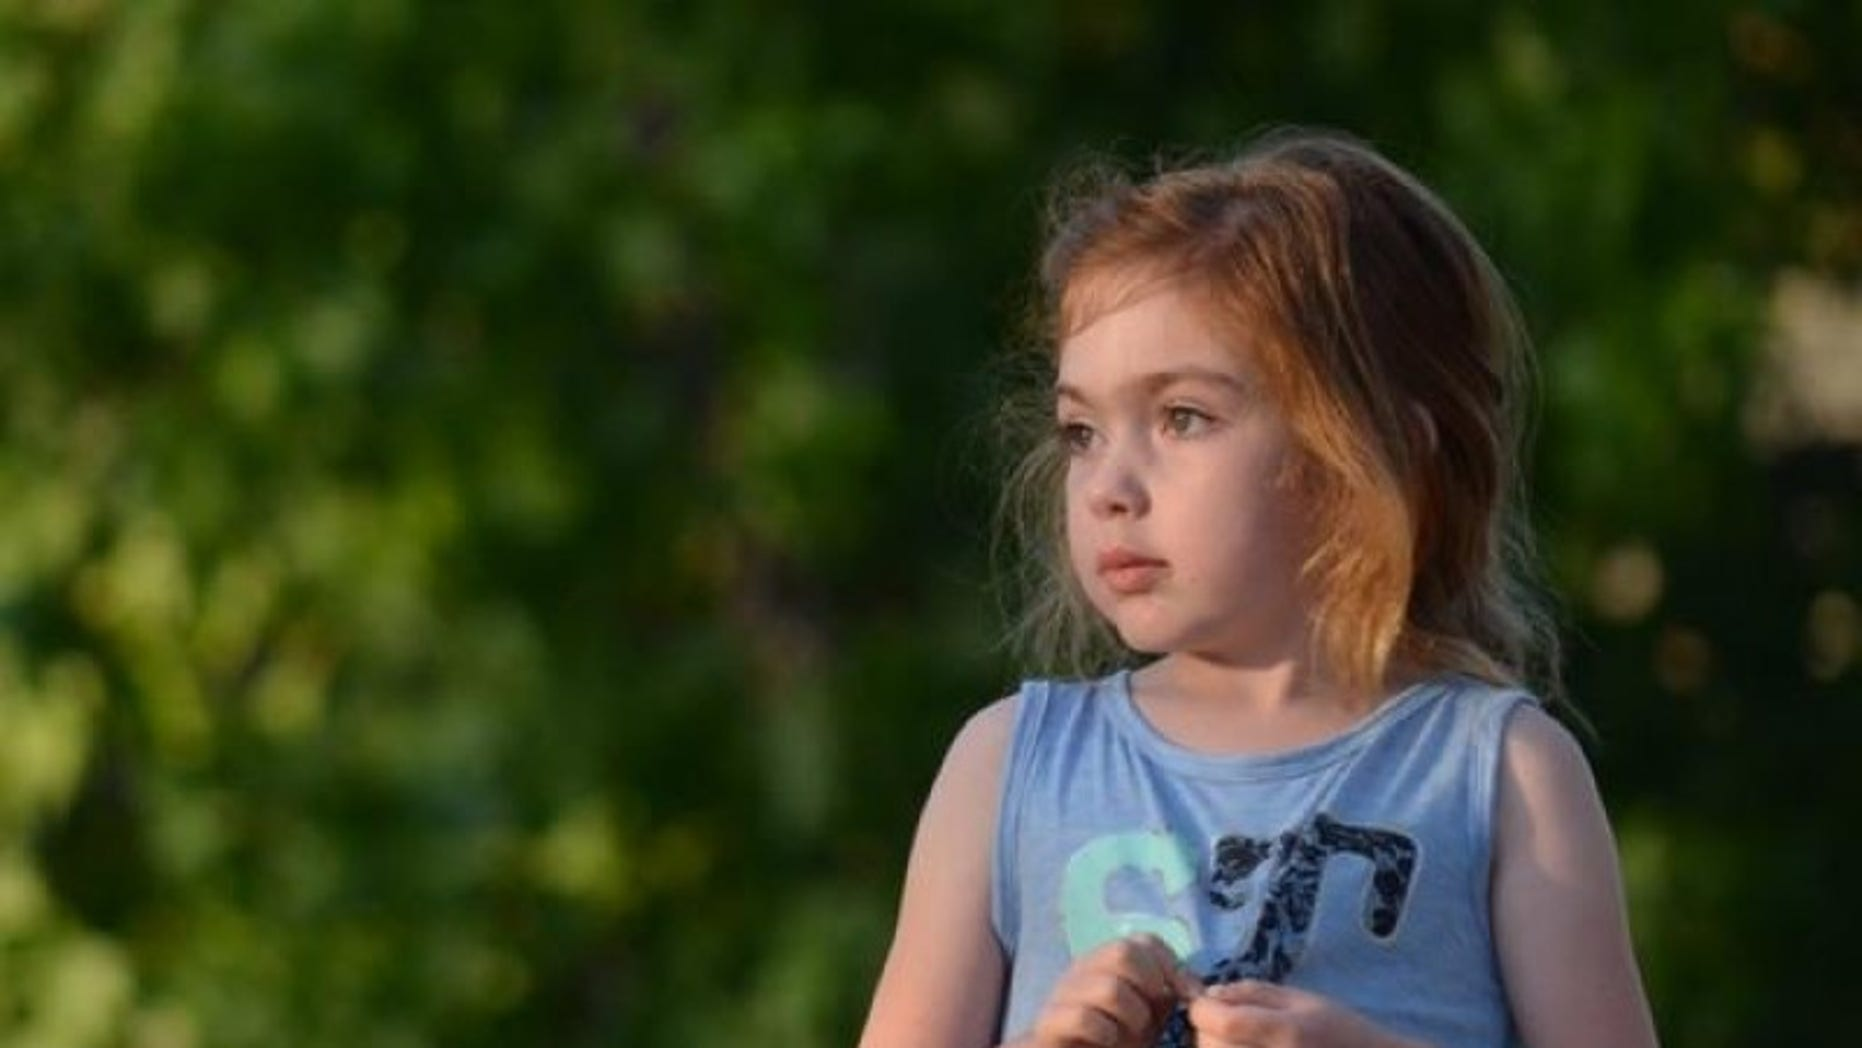 Zoe Dewaghe was diagnosed with Sanfilippo syndrome.